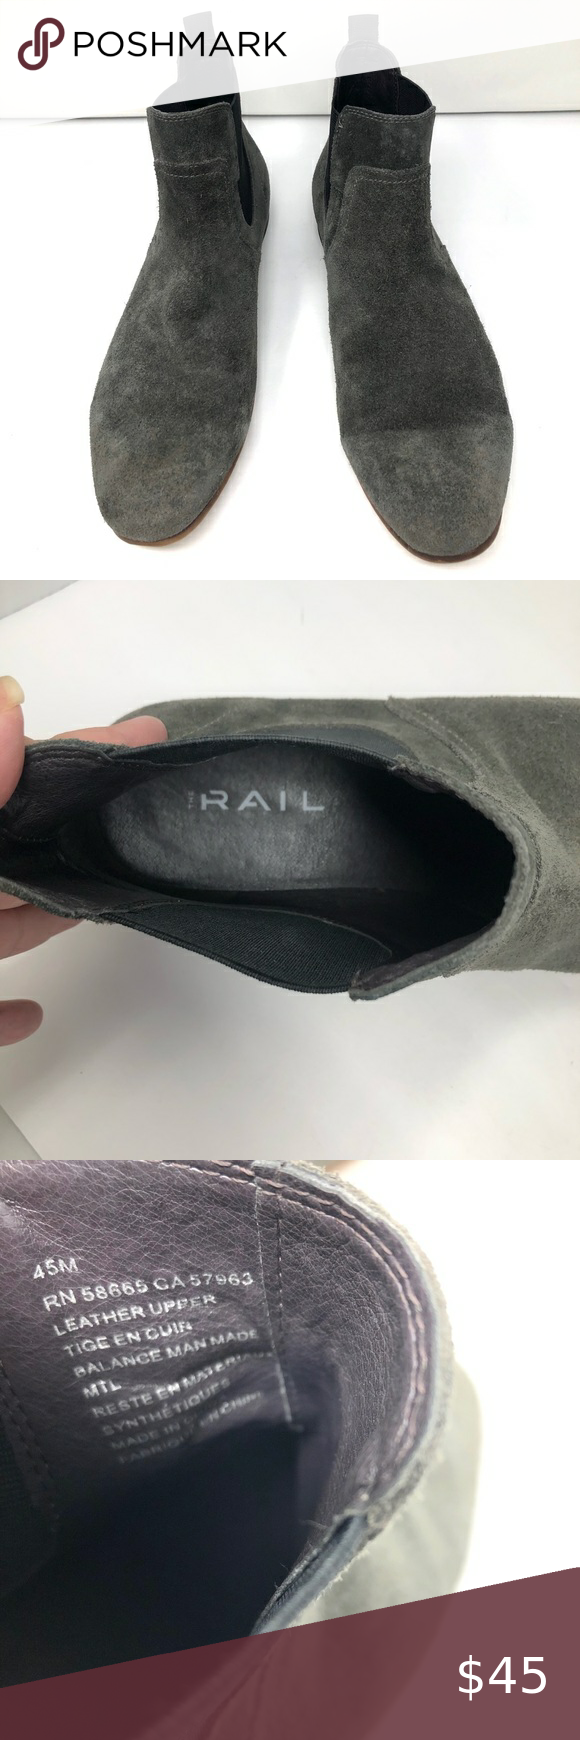 The Rail Brysen Gray Suede Chelsea Boots Gray Suede Low Boot In Euc One Boot Has A Crease From Use In 2020 Grey Suede Chelsea Boots Chelsea Boots Suede Chelsea Boots